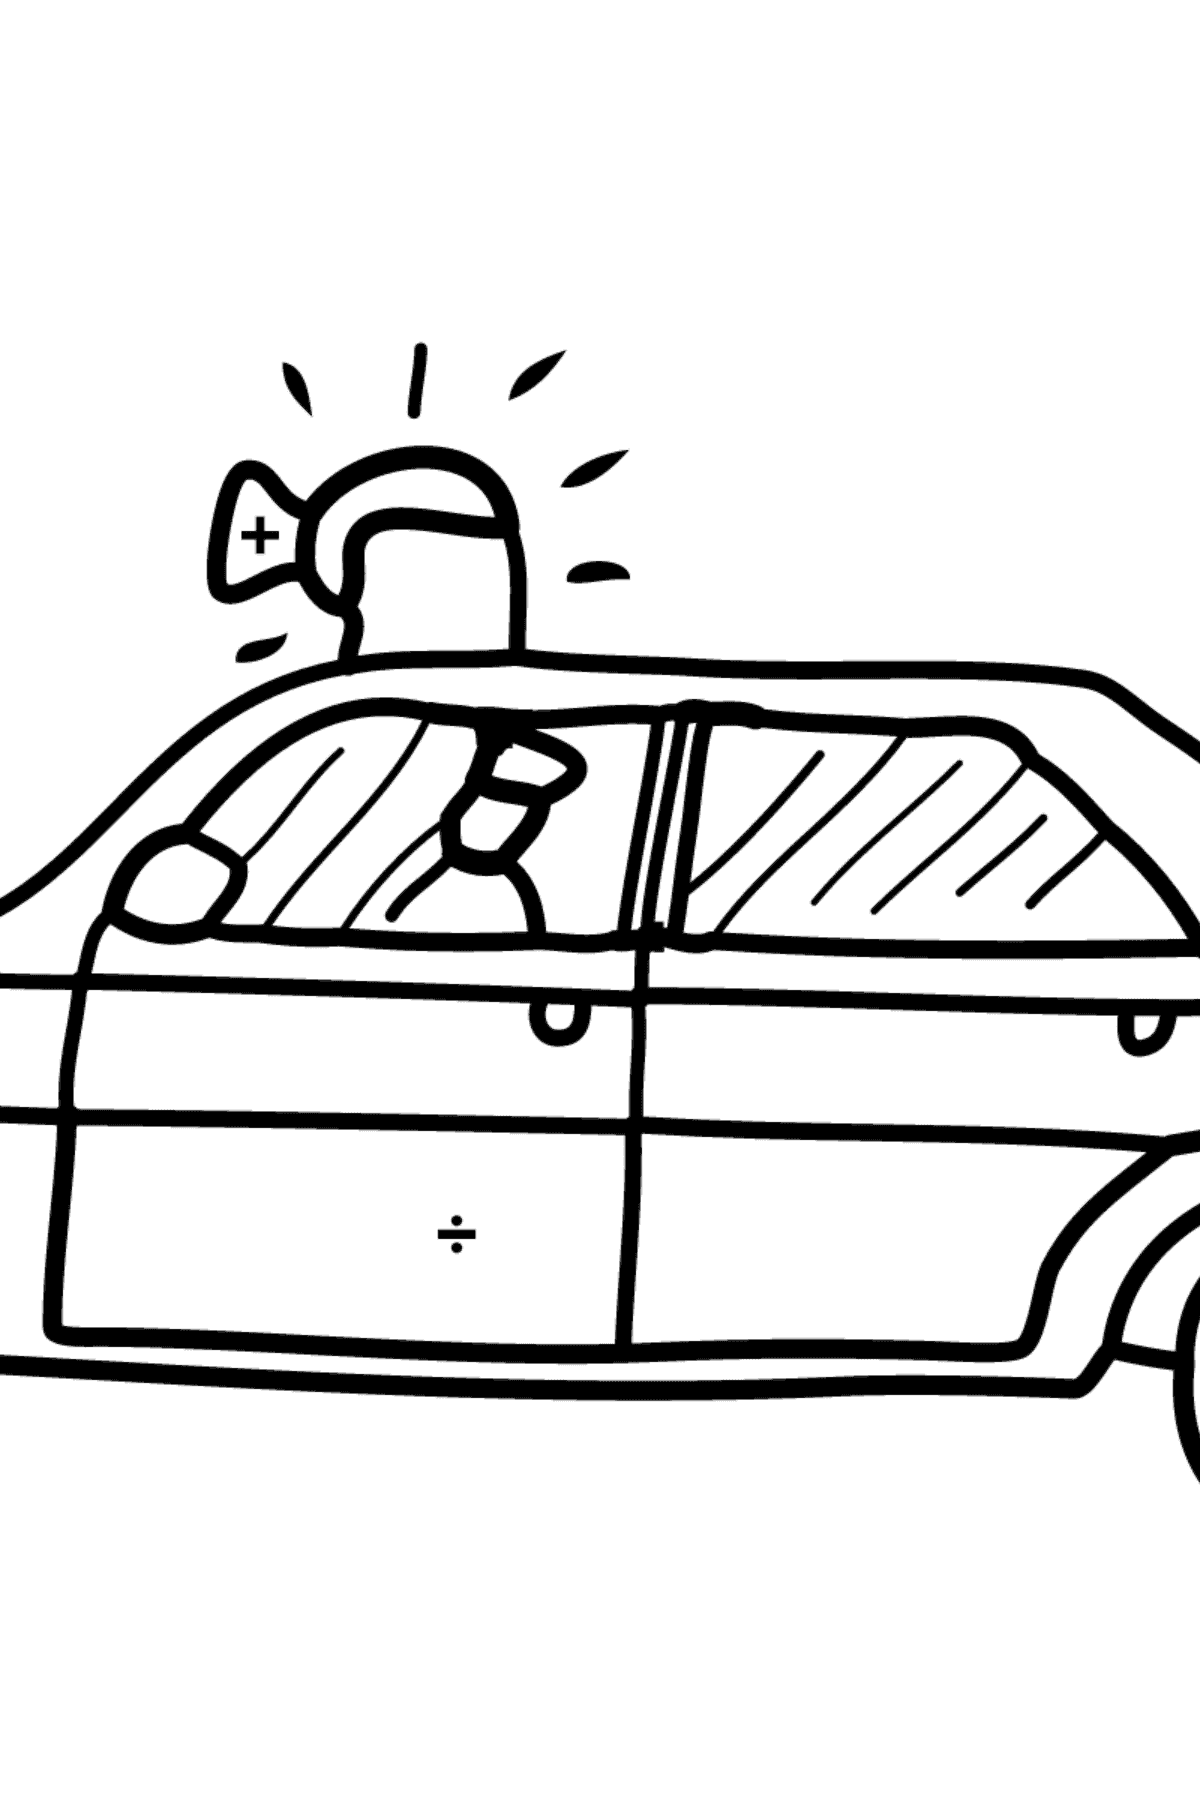 Coloring Page - A Police Car for Children  - Color by Symbols and Geometric Shapes